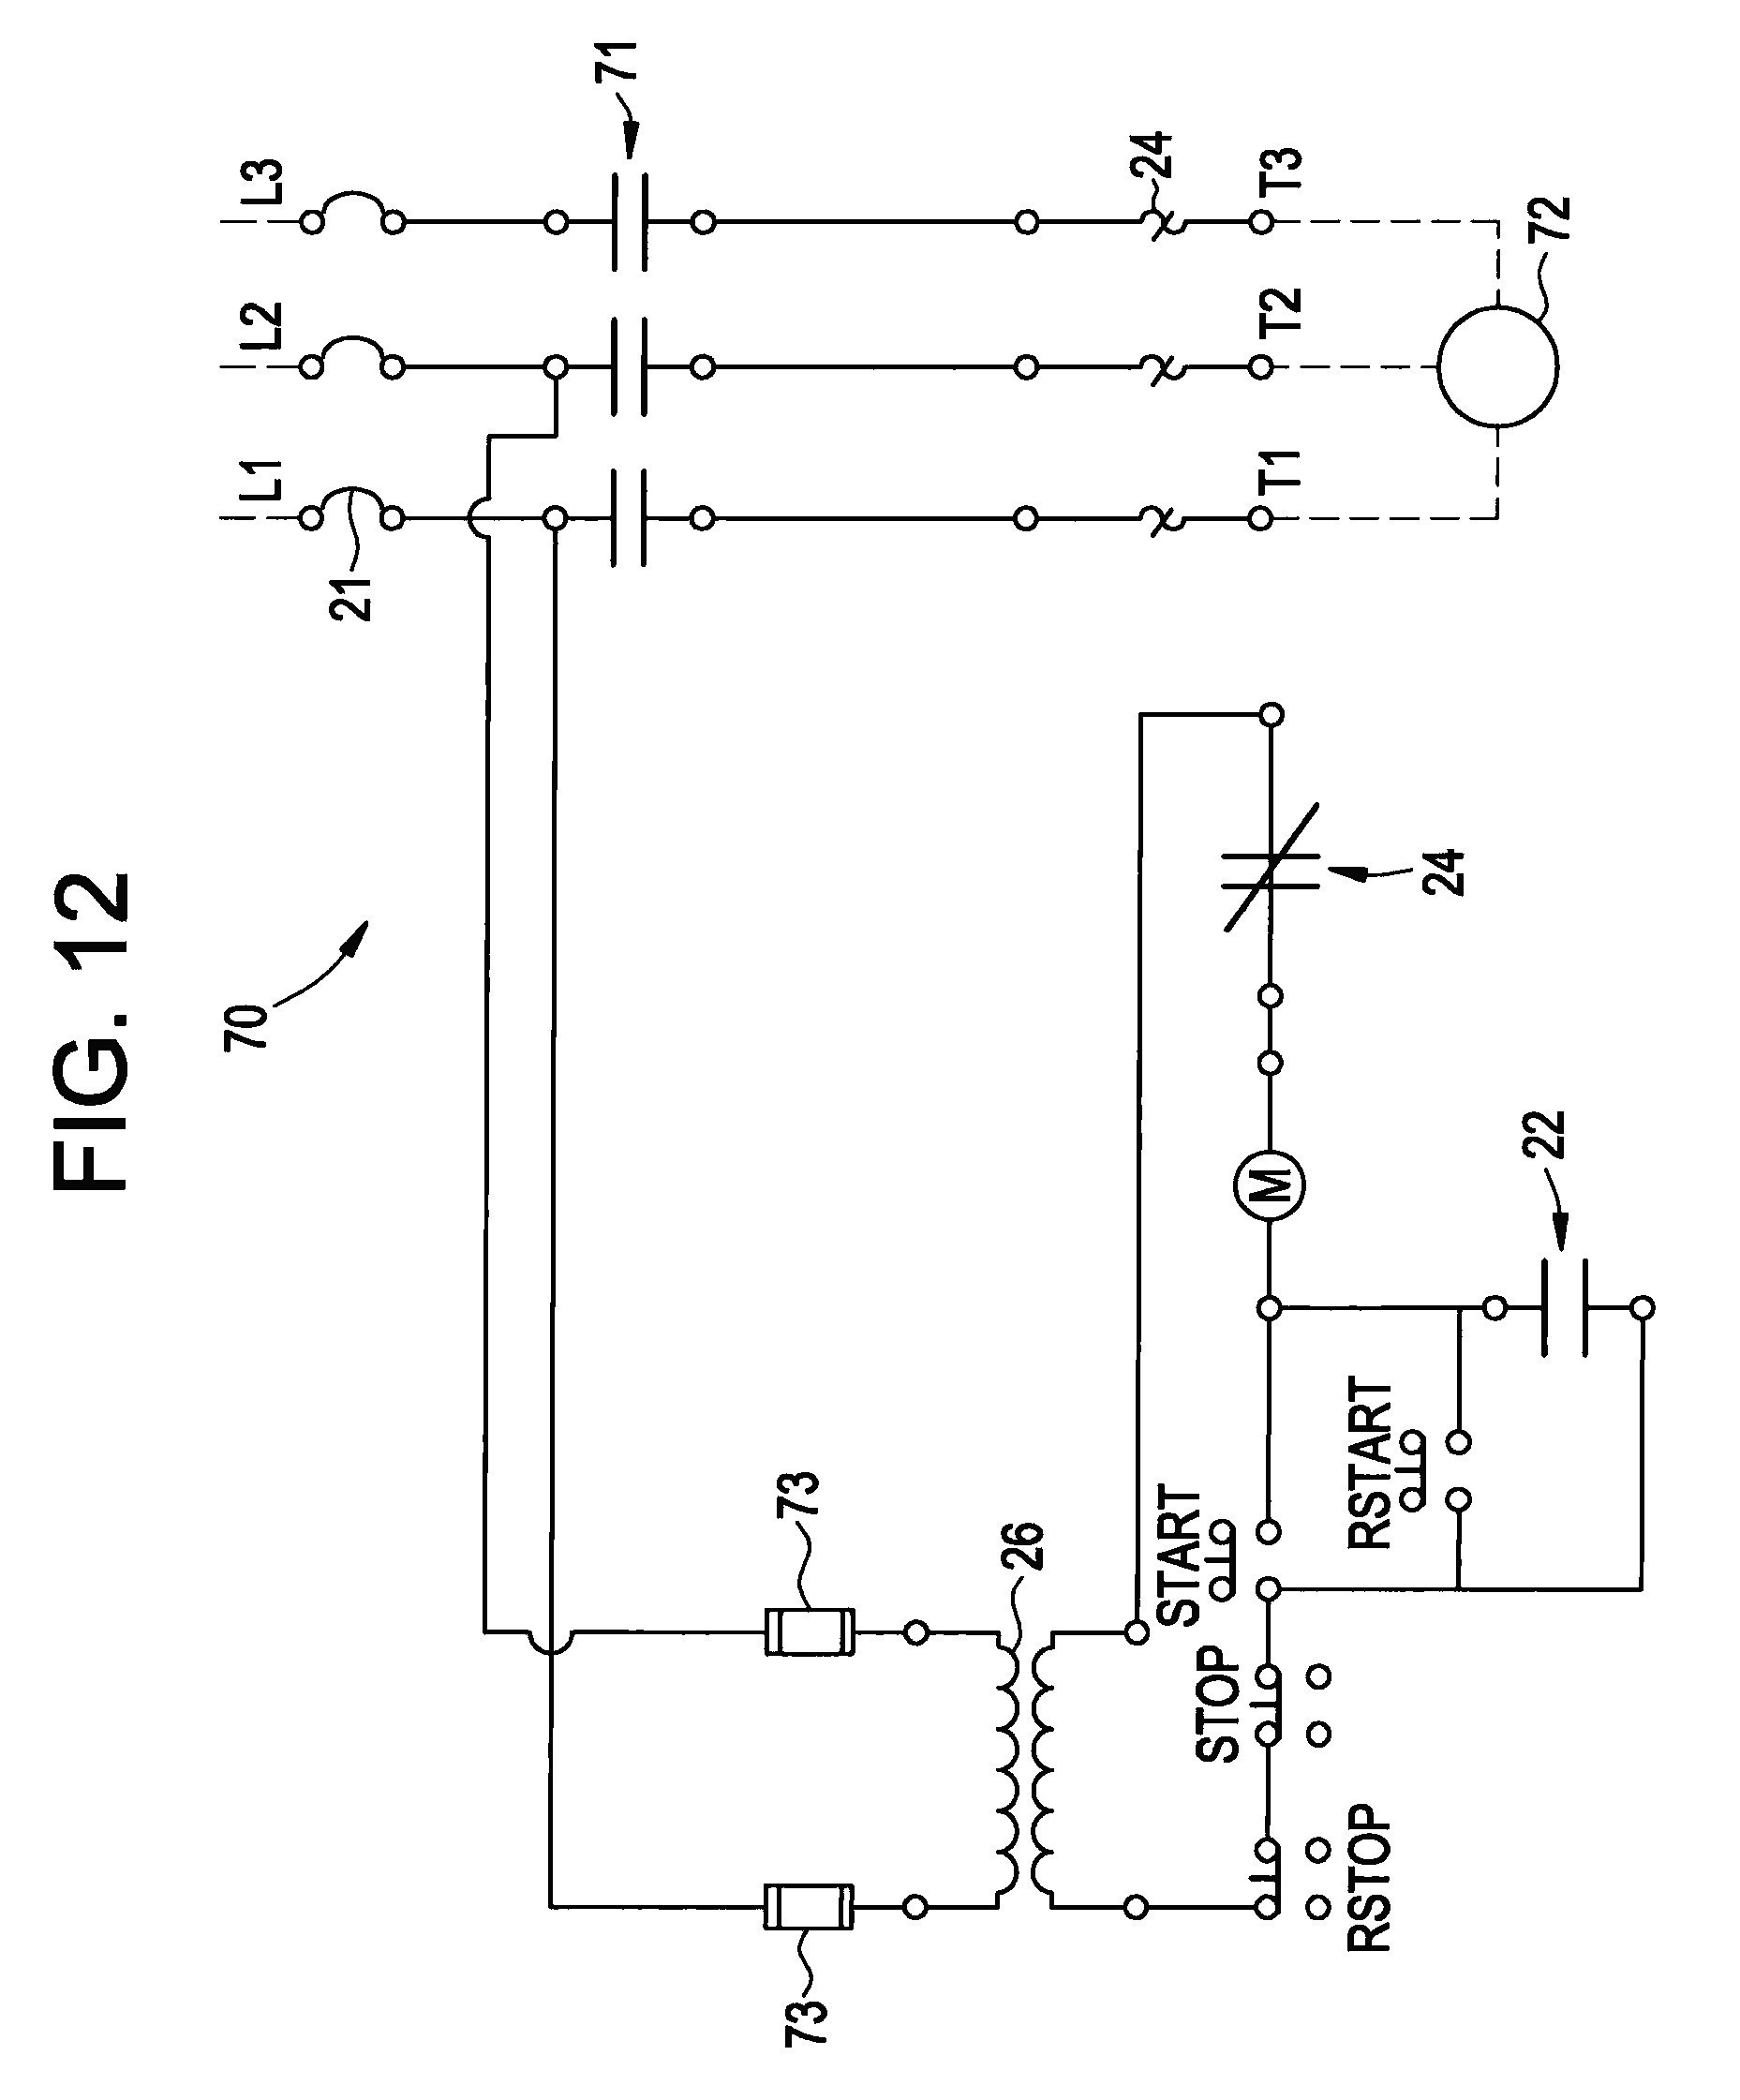 hight resolution of  3 phase contactor wiring diagram 3 phase contactor wiring diagram start stop